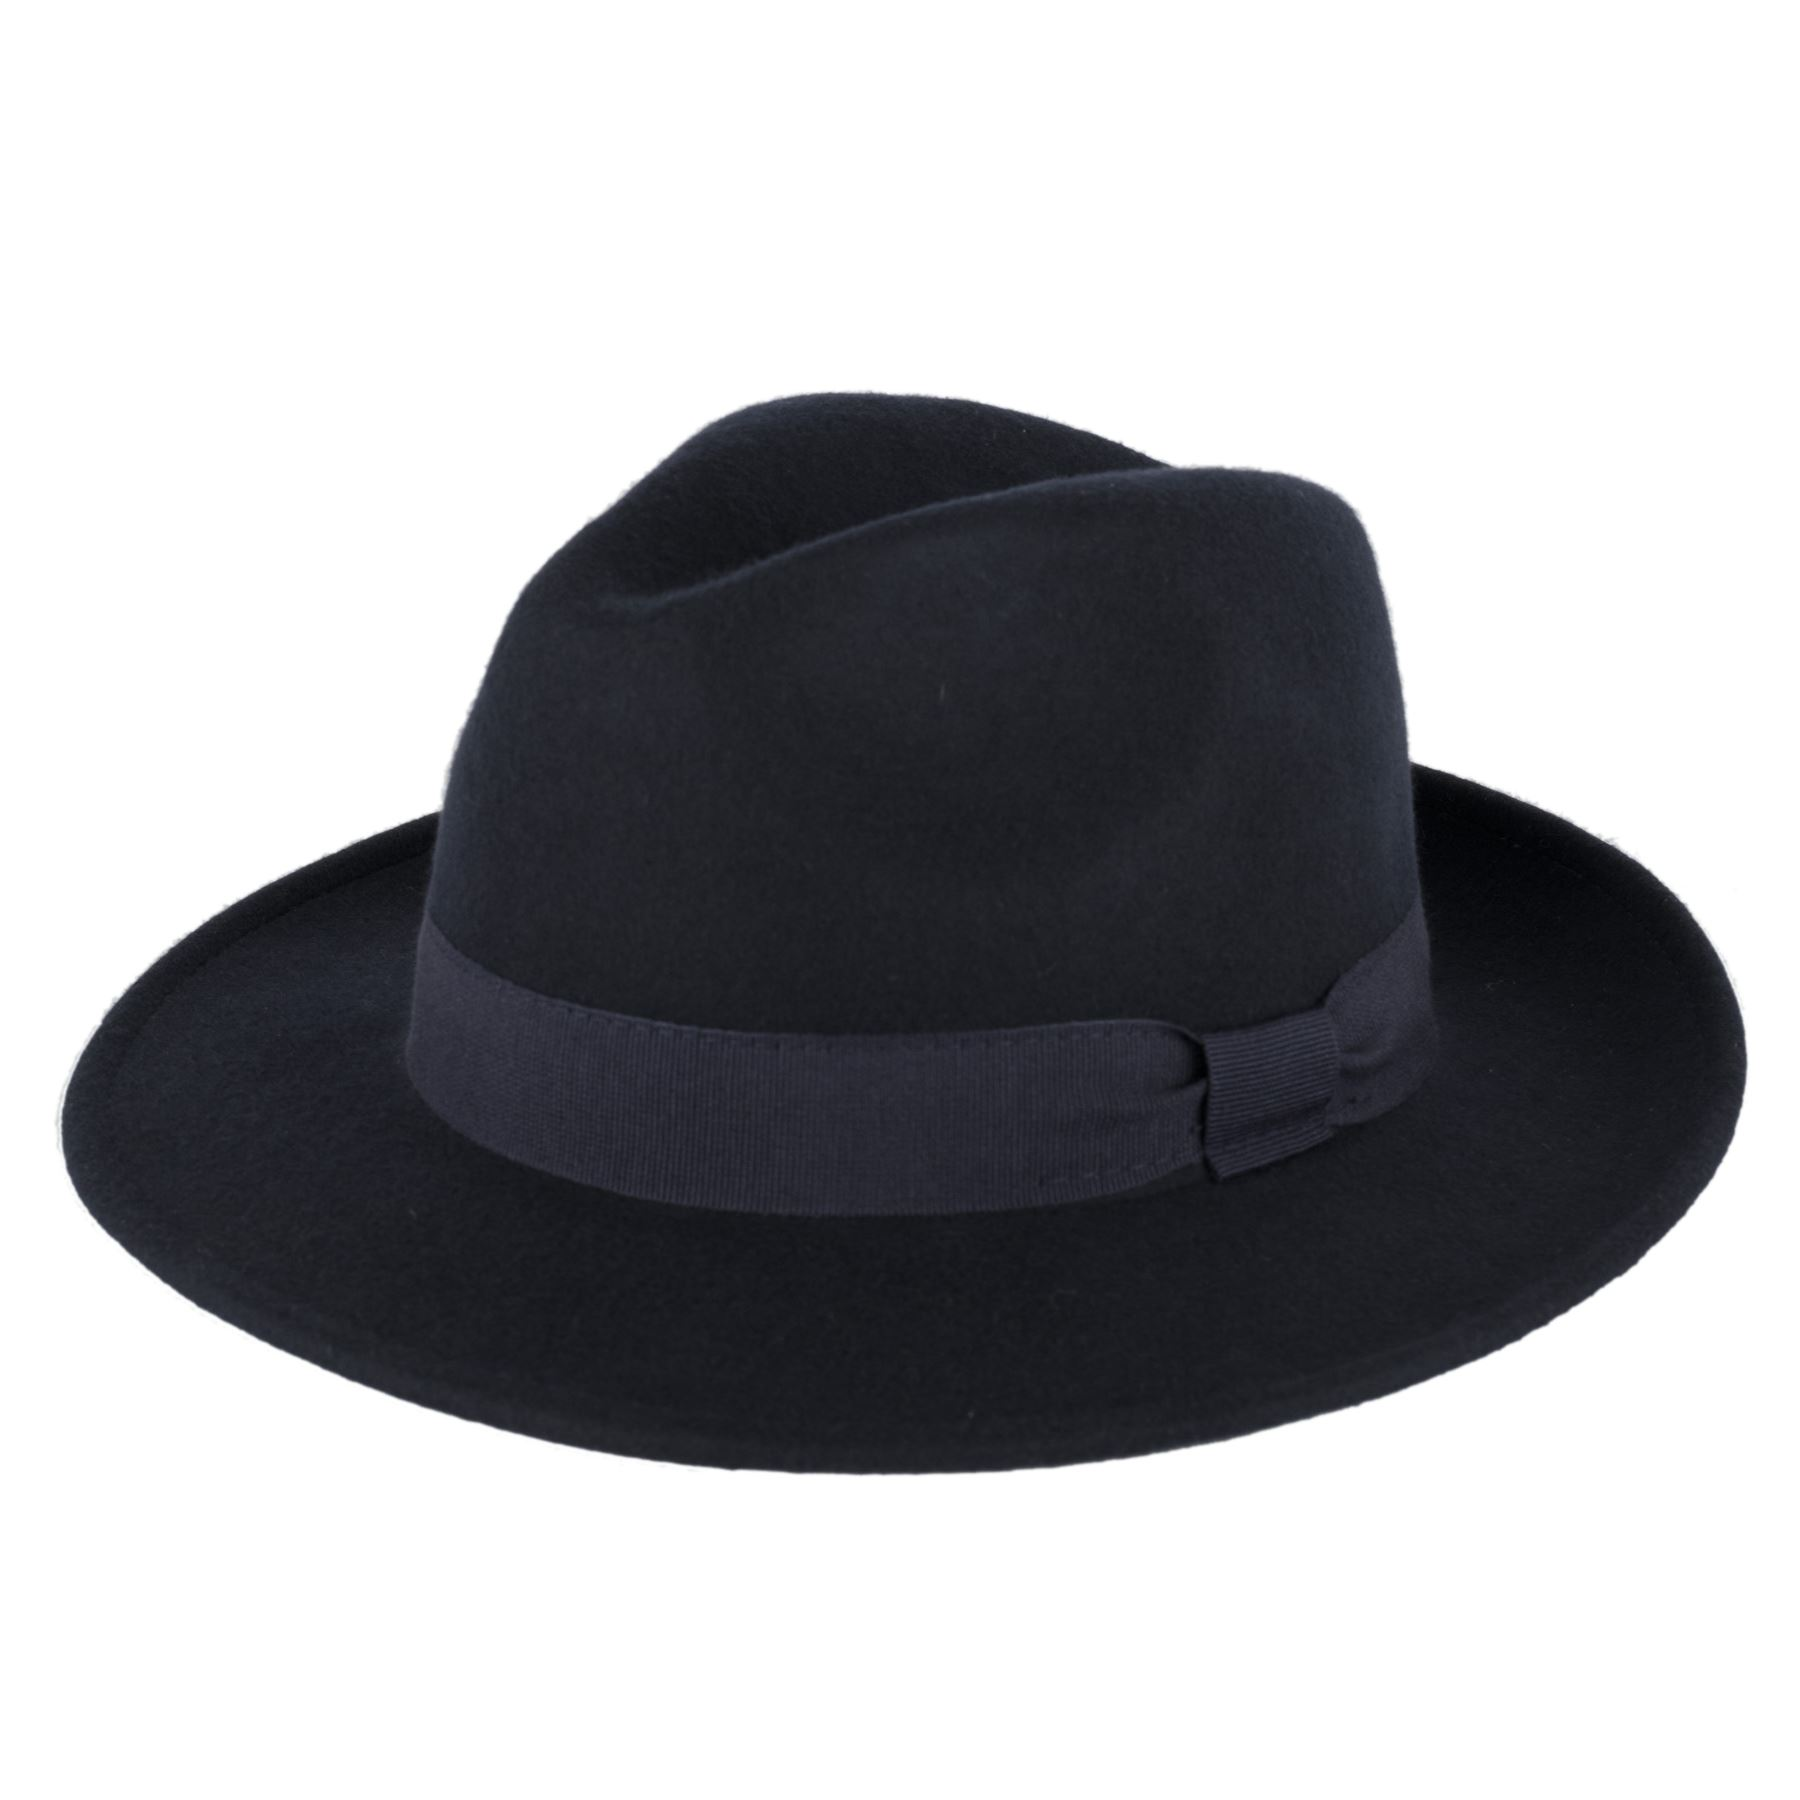 Mens Ladies 100 Wool Handmade in Italy Waterproof Trilby Fedora Hat ... 438e59f3b7f8